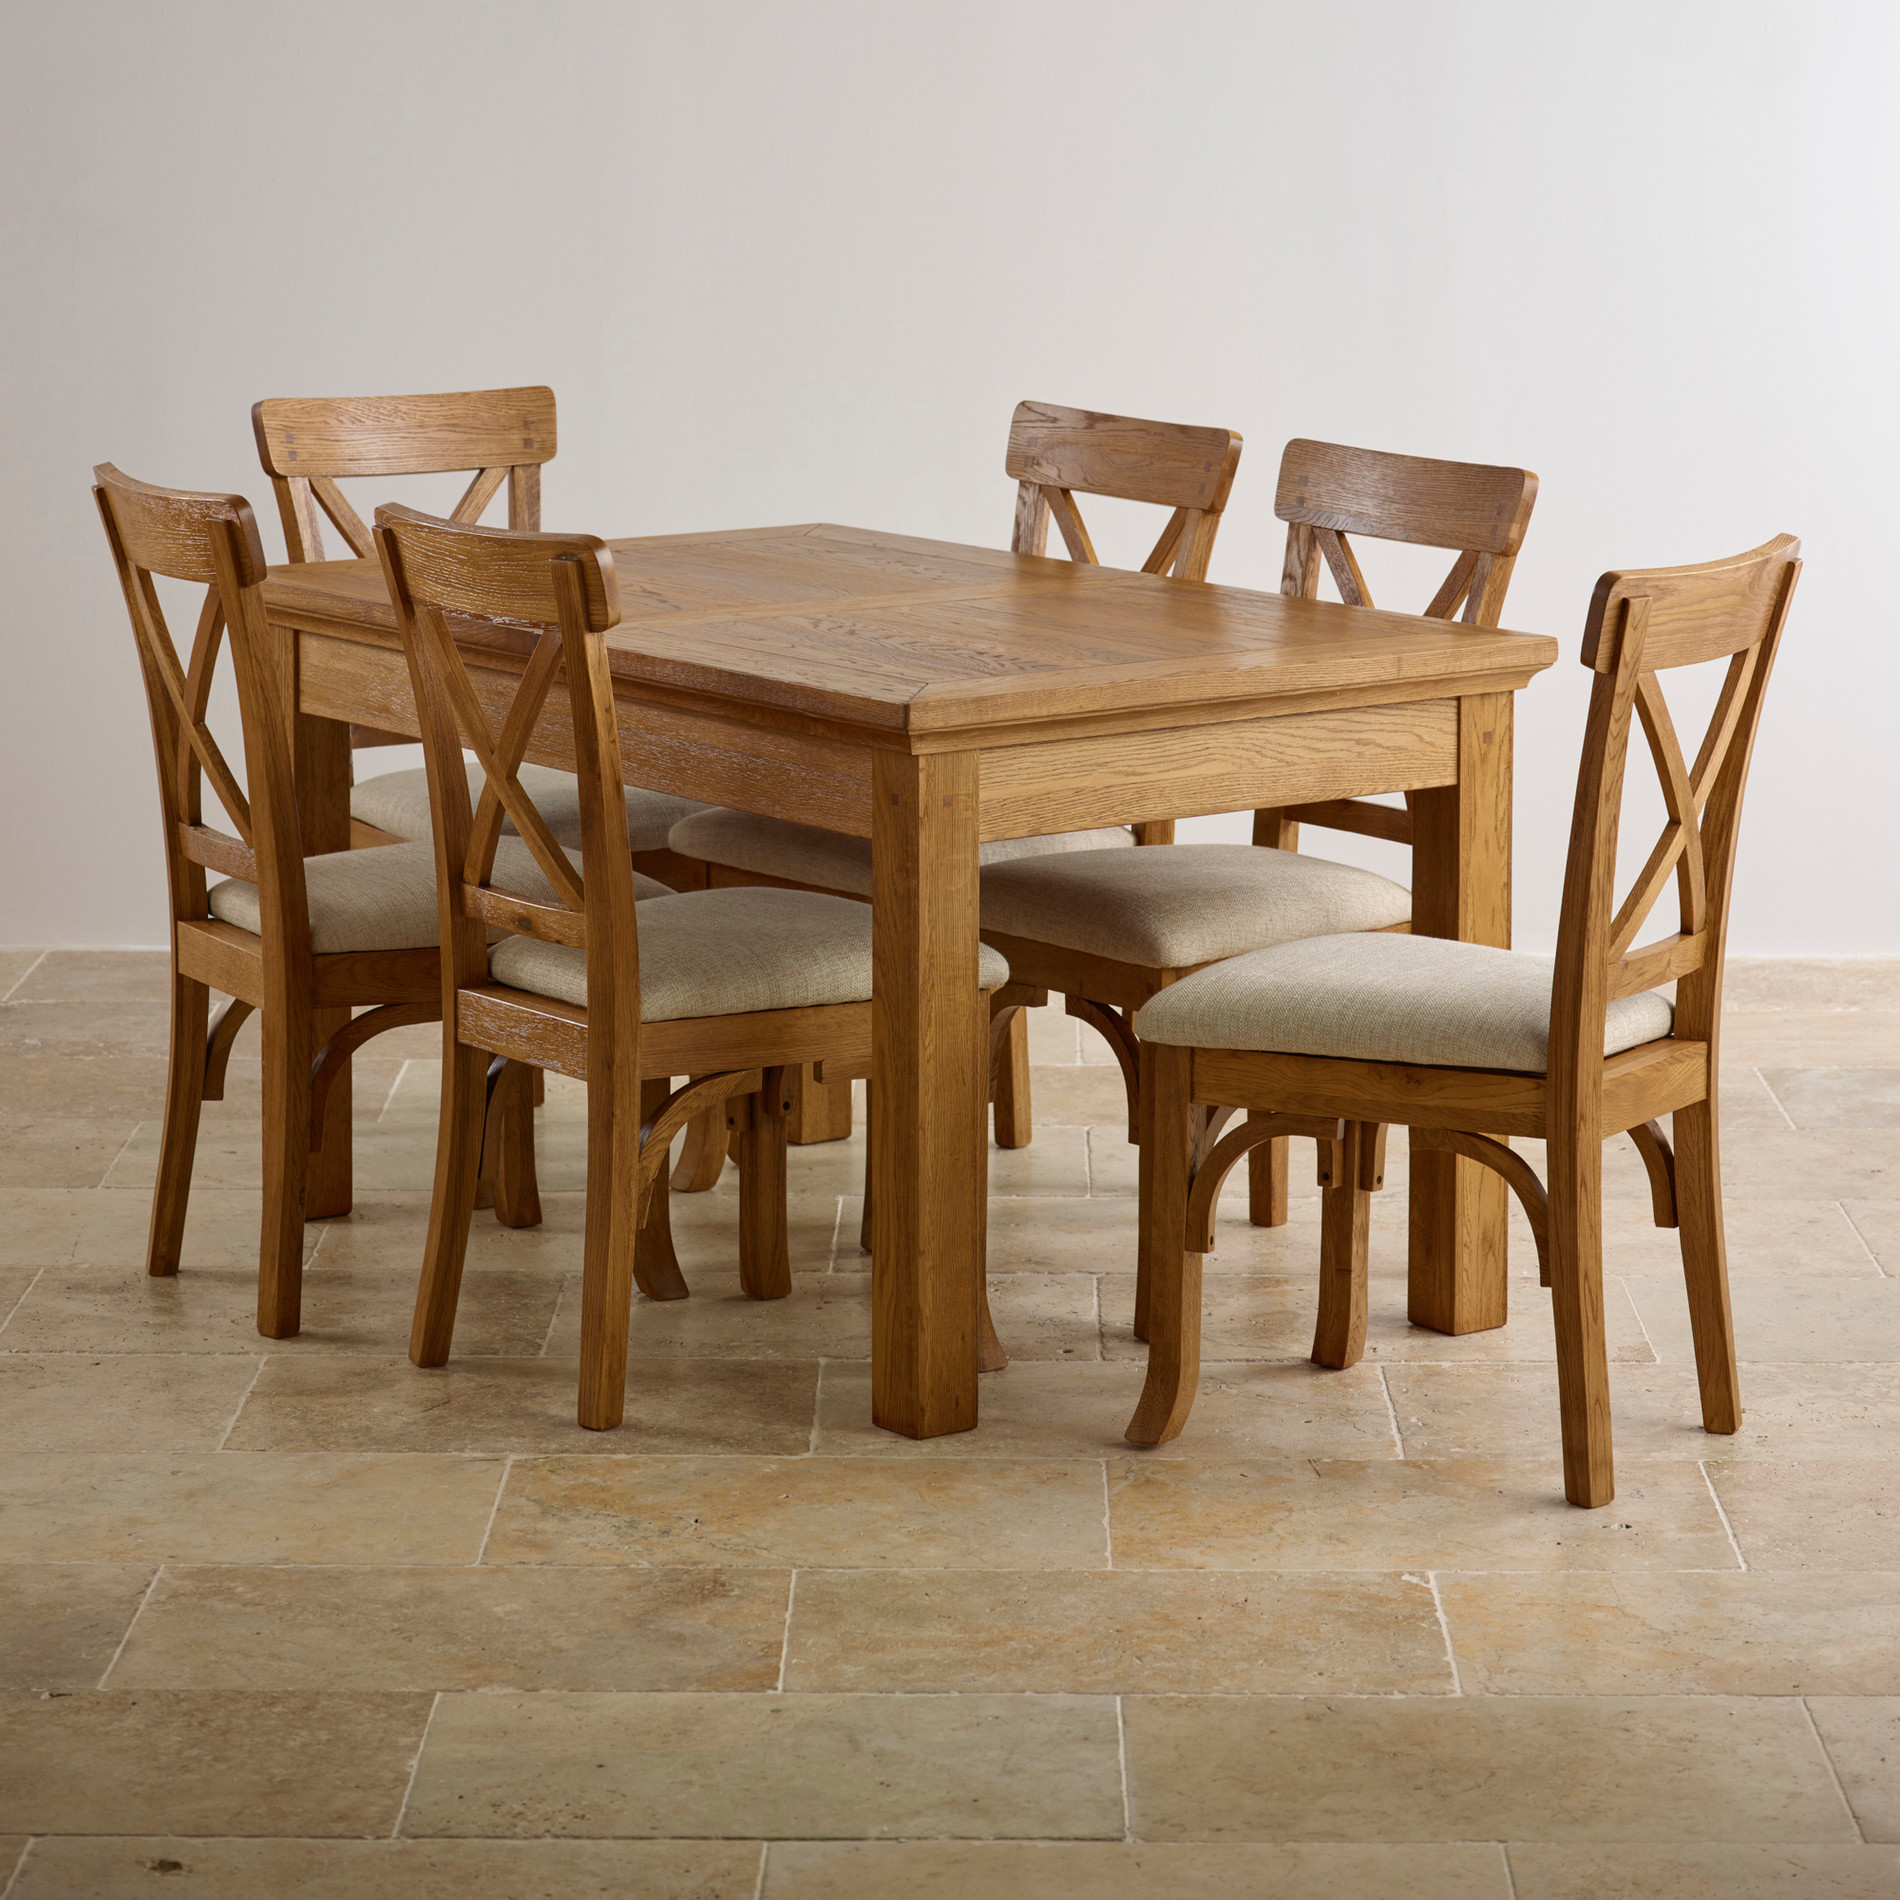 Oak table and chair- durable and versatile